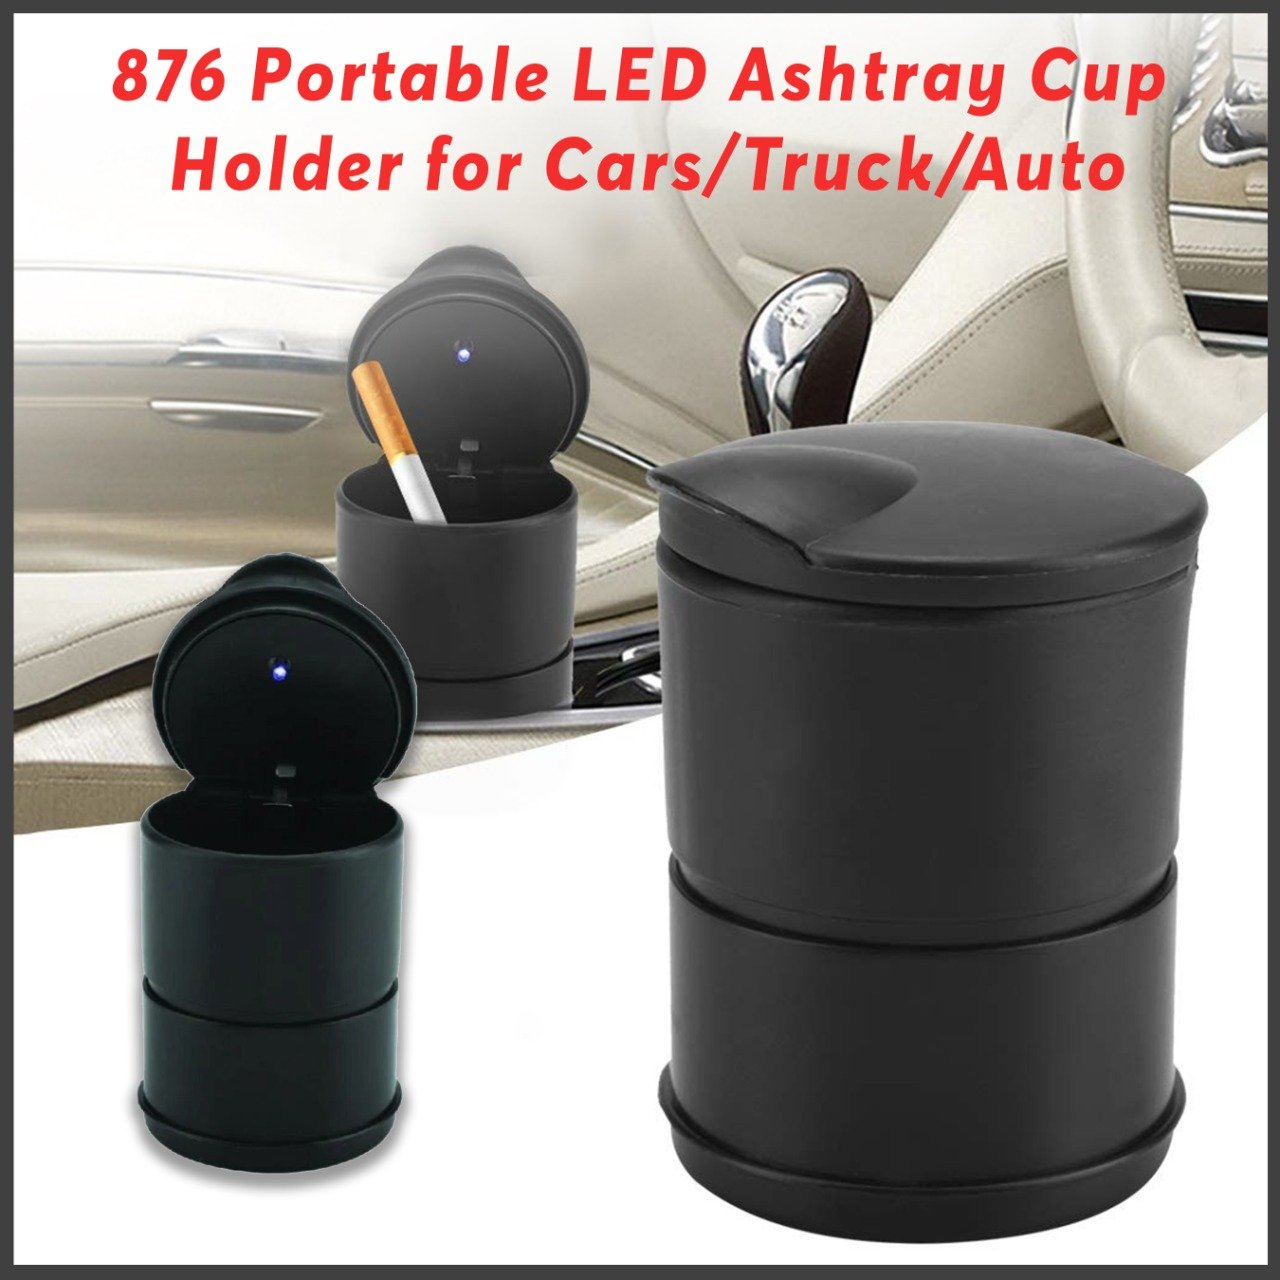 0876 Portable LED Ashtray Cup Holder for Cars/Truck/Auto -